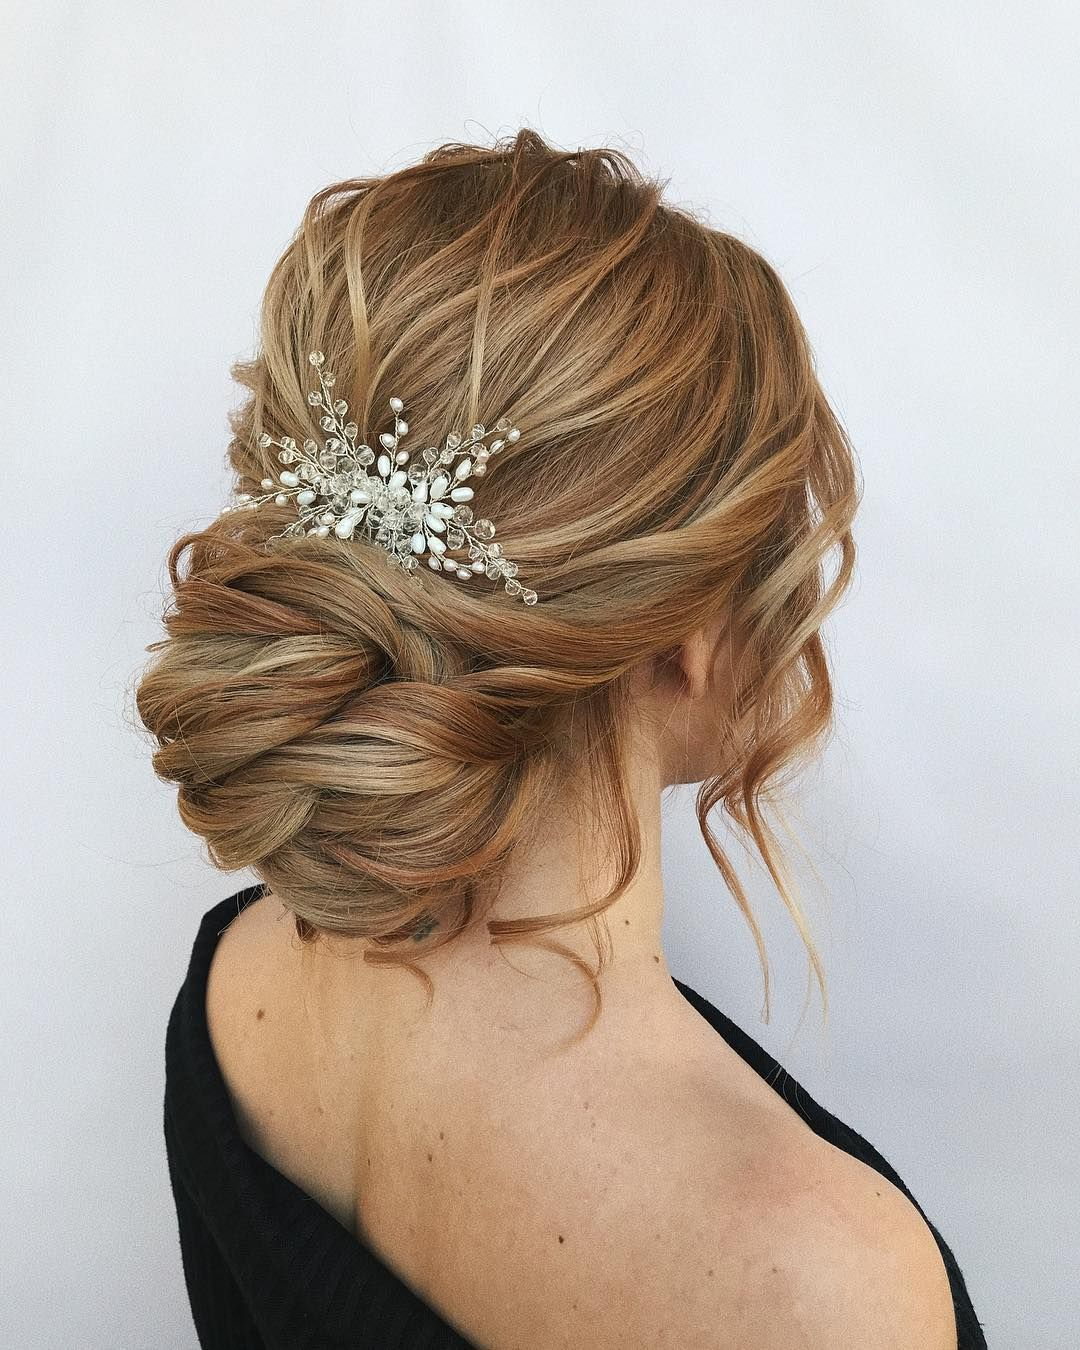 Wedding Hairstyle Lob: Beautiful Wedding Updos For Any Bride Looking For A Unique